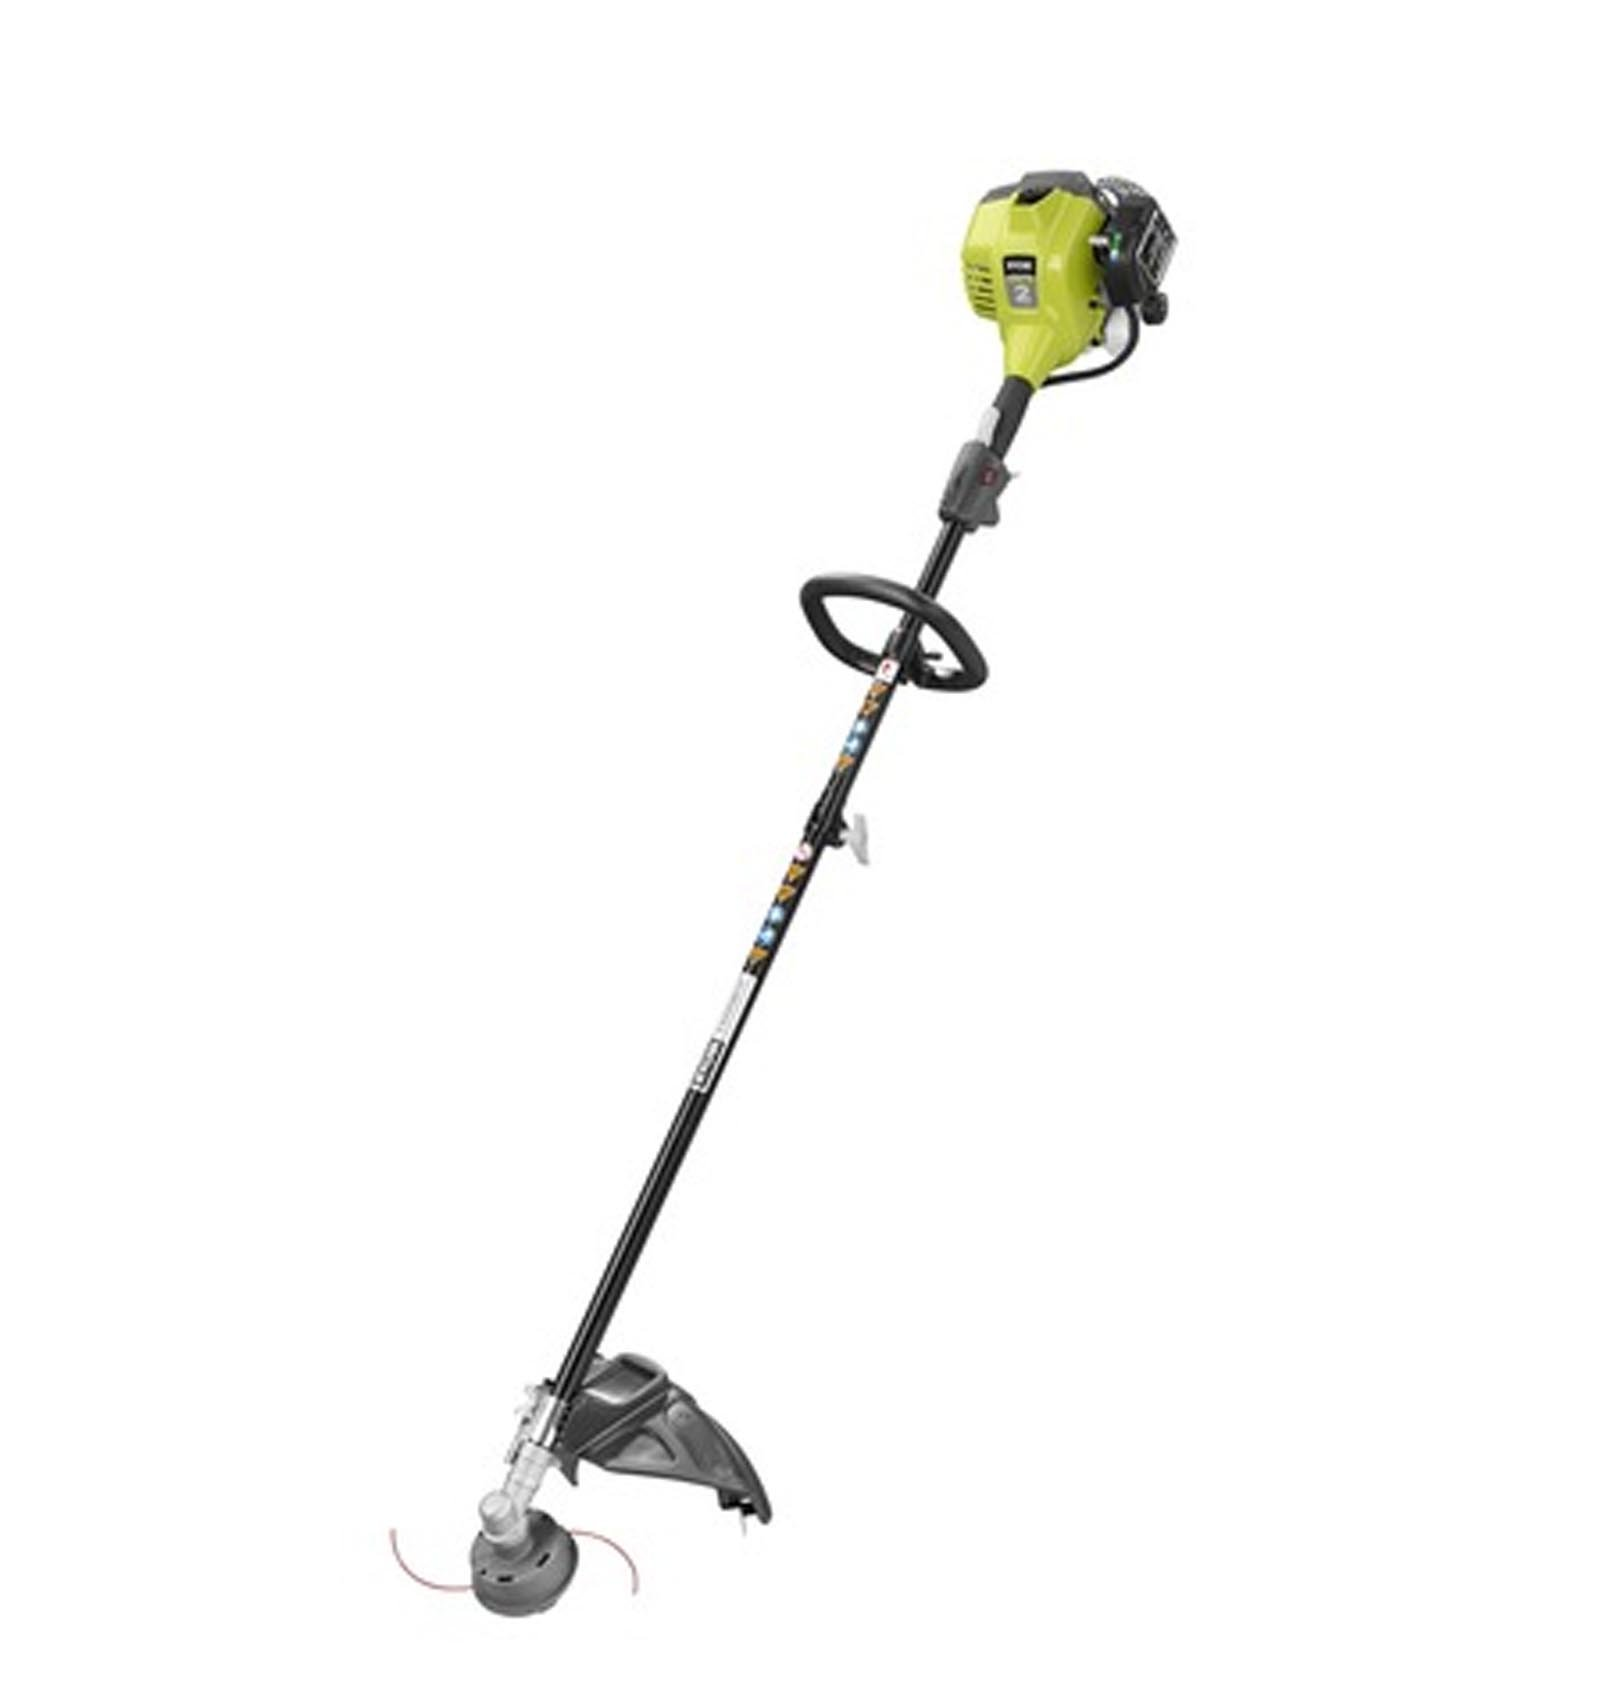 Ryobi RY253SS 25cc Straight Shaft 18'' Lawn Grass Weed Trimmer 2 Cycle Gas Power